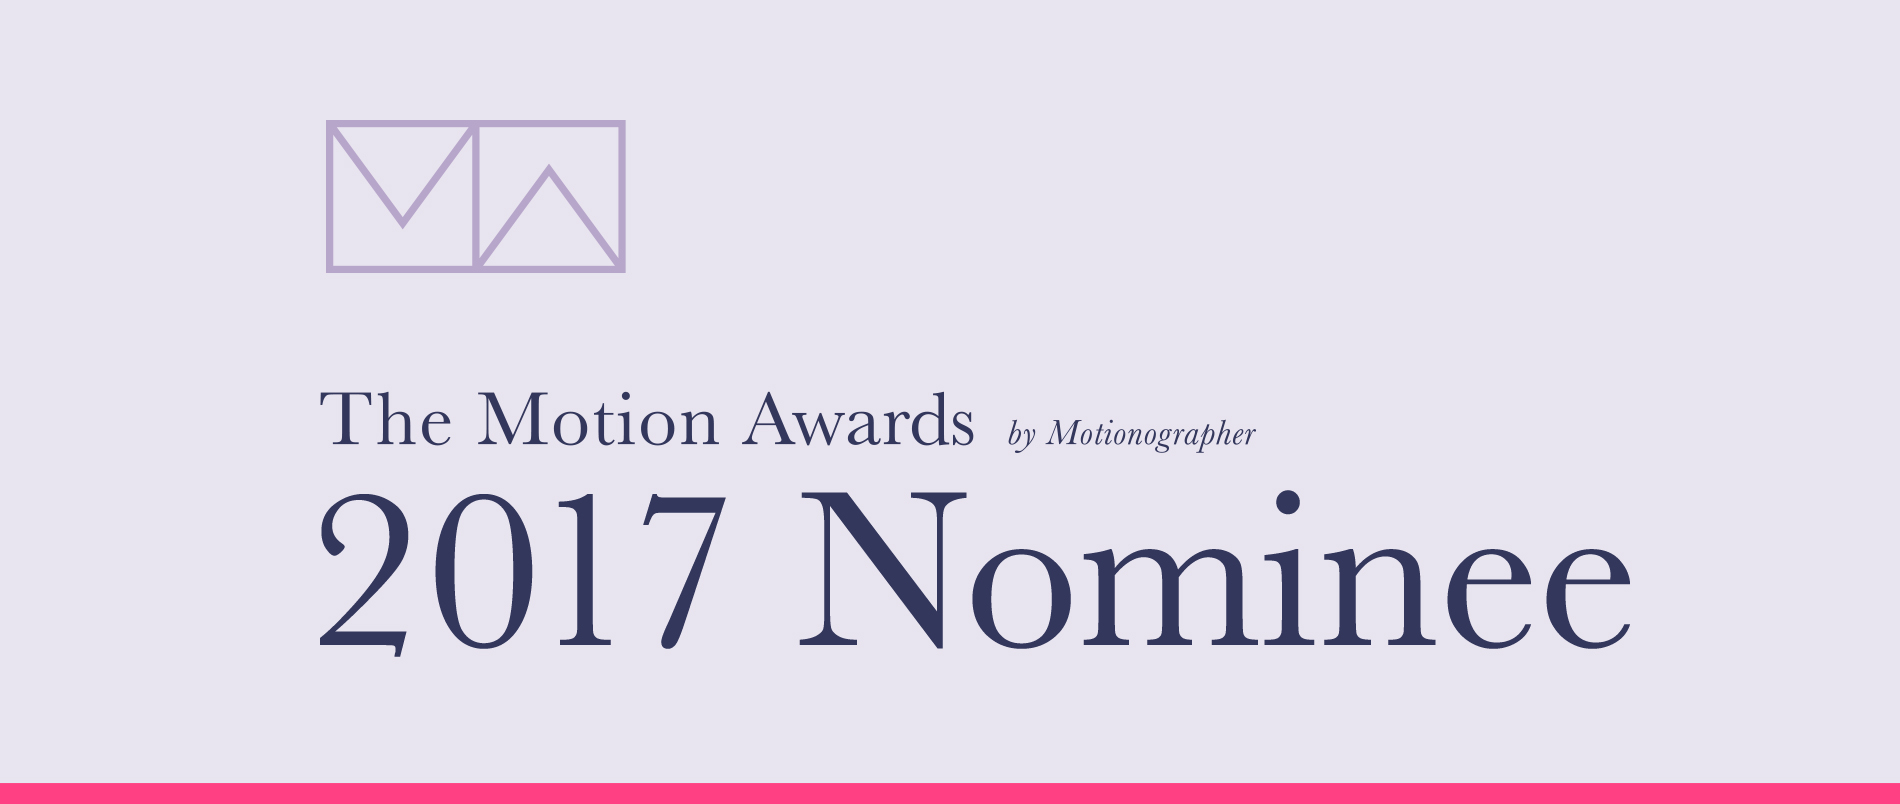 MotionAwardsNominees.jpg